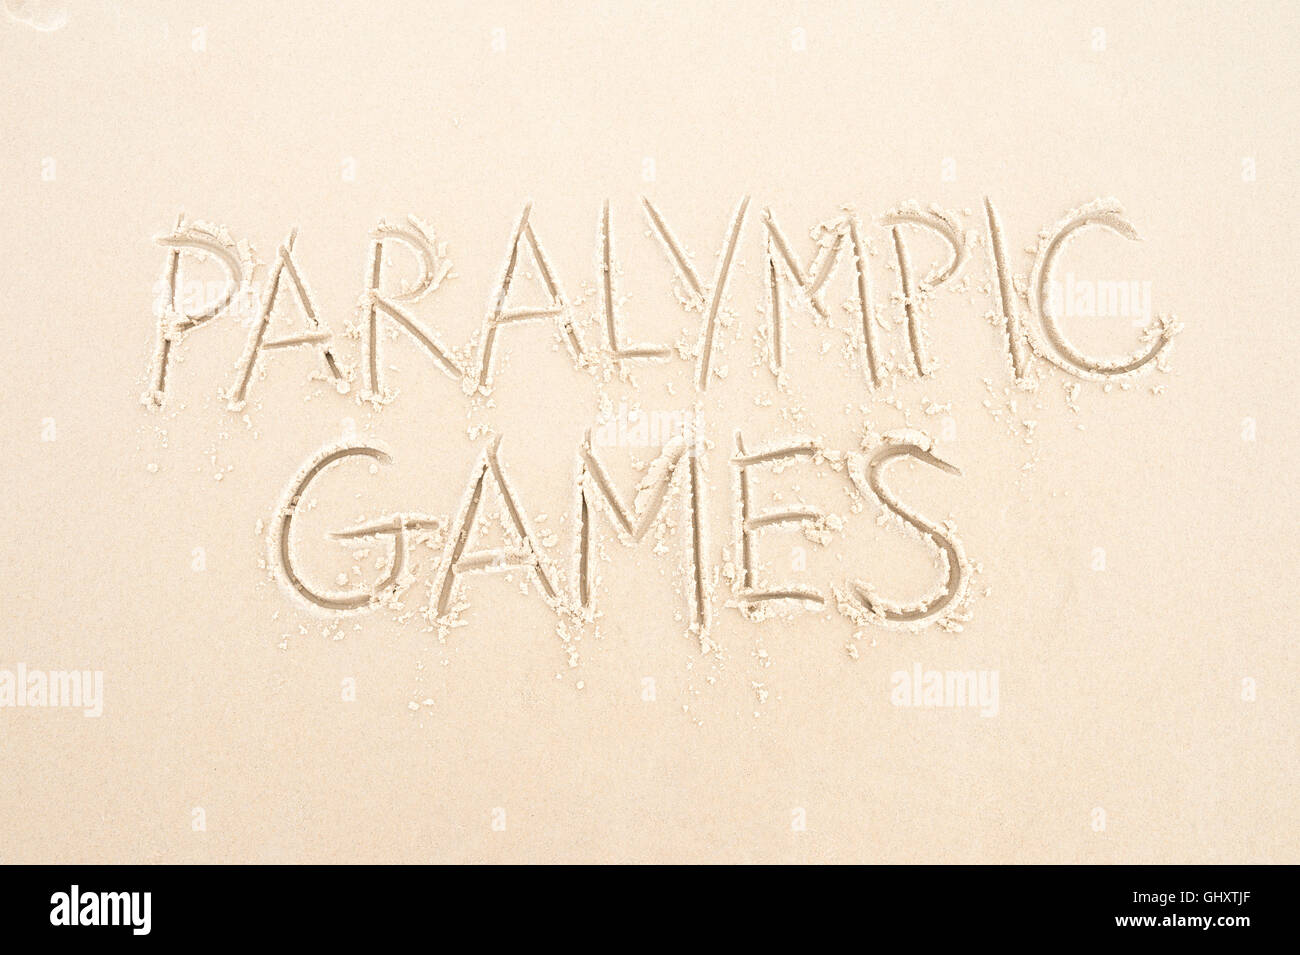 RIO DE JANEIRO - MARCH 20, 2016: Paralympic Games message written in the sand on Ipanema Beach. - Stock Image